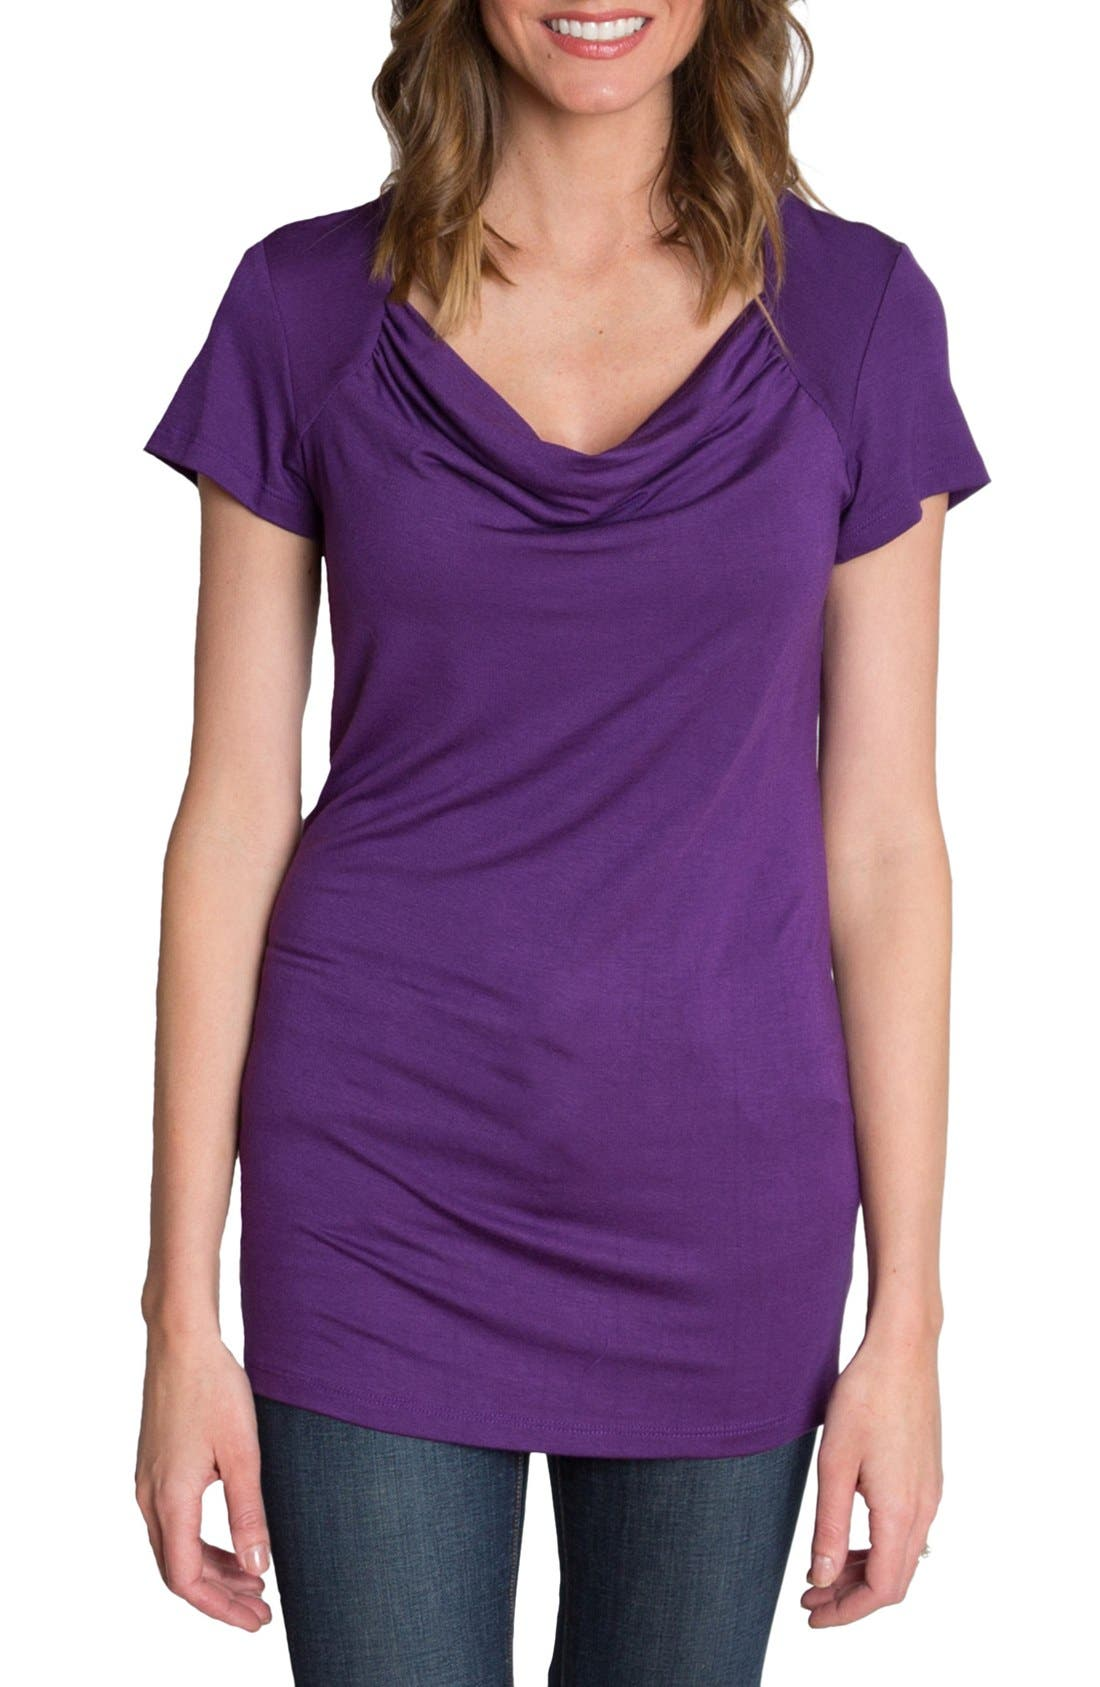 UDDERLY HOT MAMA, 'Chic' Cowl Neck Nursing Tee, Main thumbnail 1, color, PURPLE